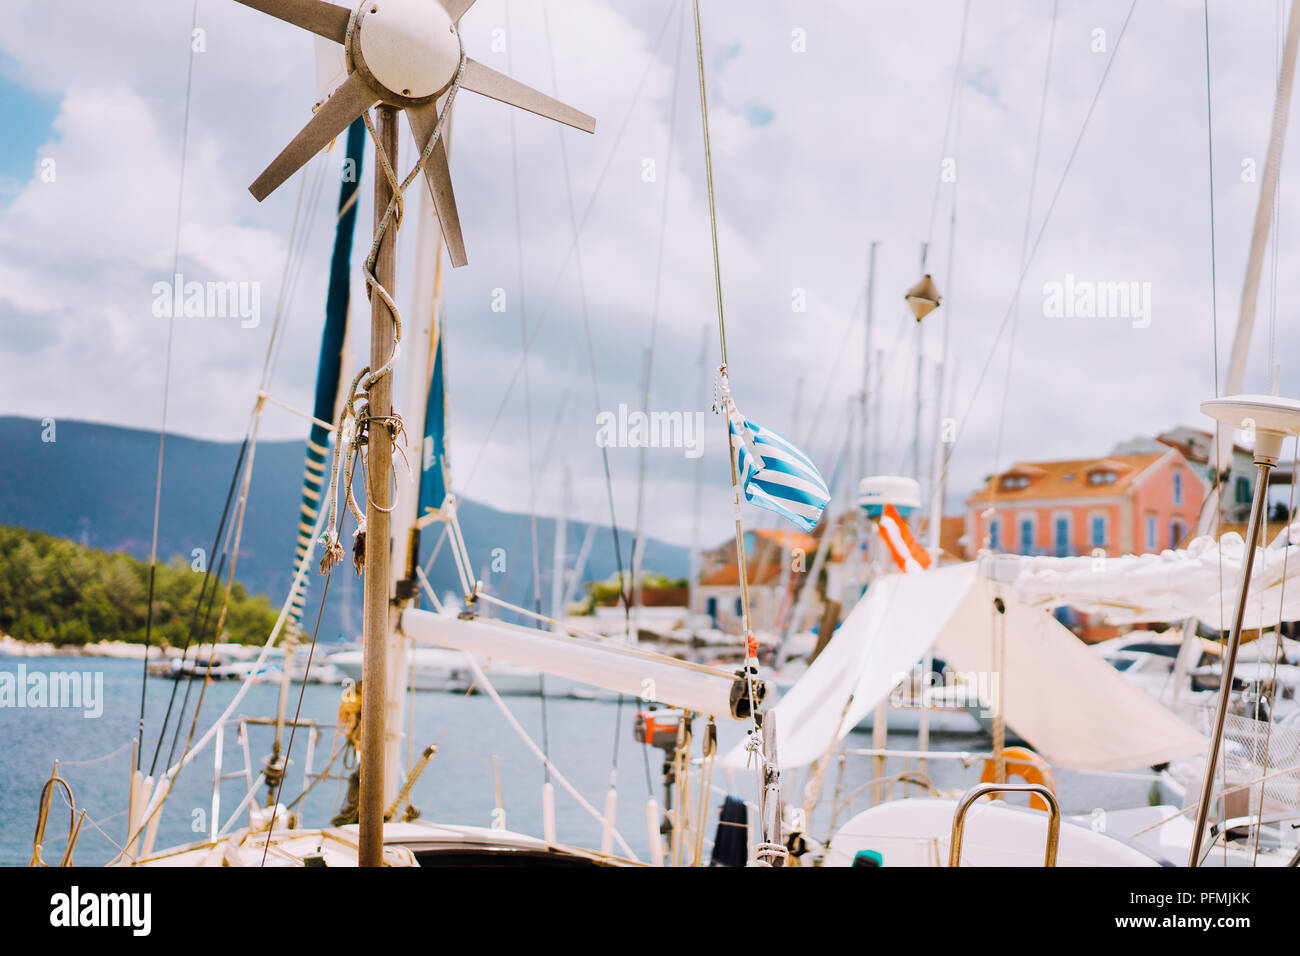 Sailboat detailed parts. Close up of masts of yacht over blue sea. Yachting concept. Soft focus - Stock Image